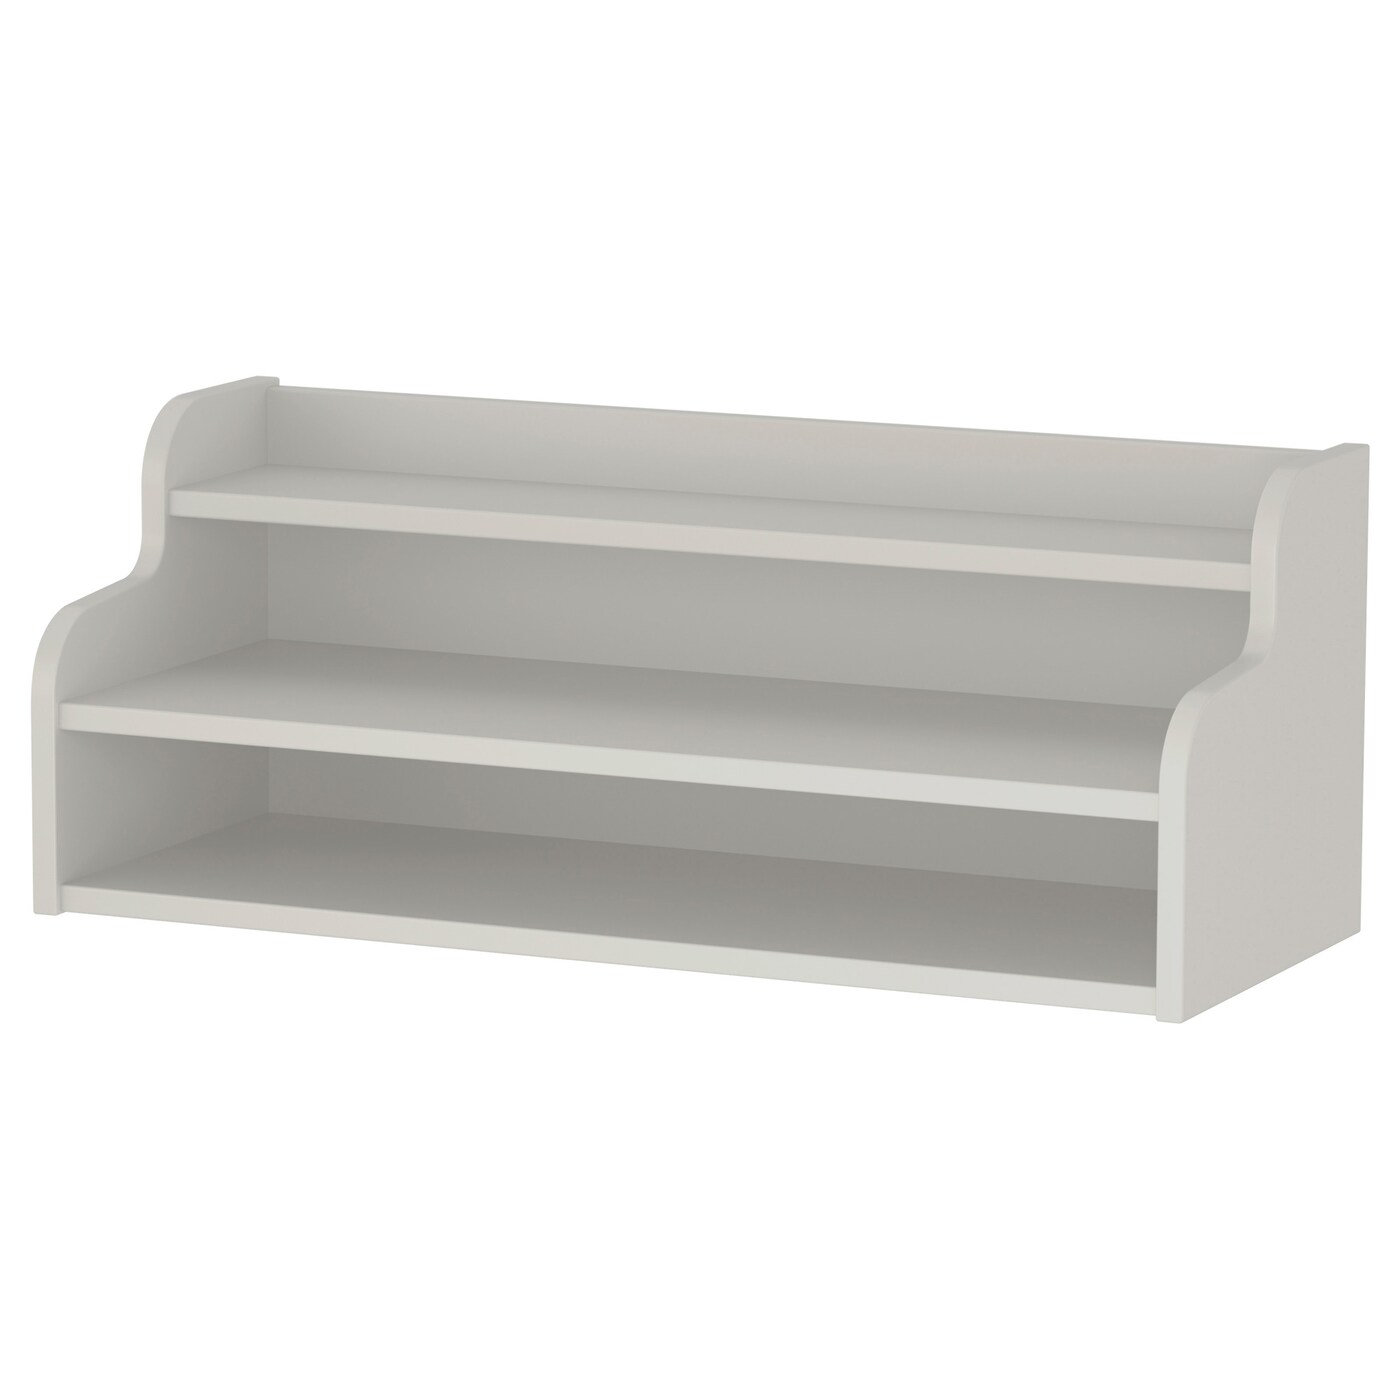 IKEA KLIMPEN add-on unit Can be placed on a table top or hung on a wall.